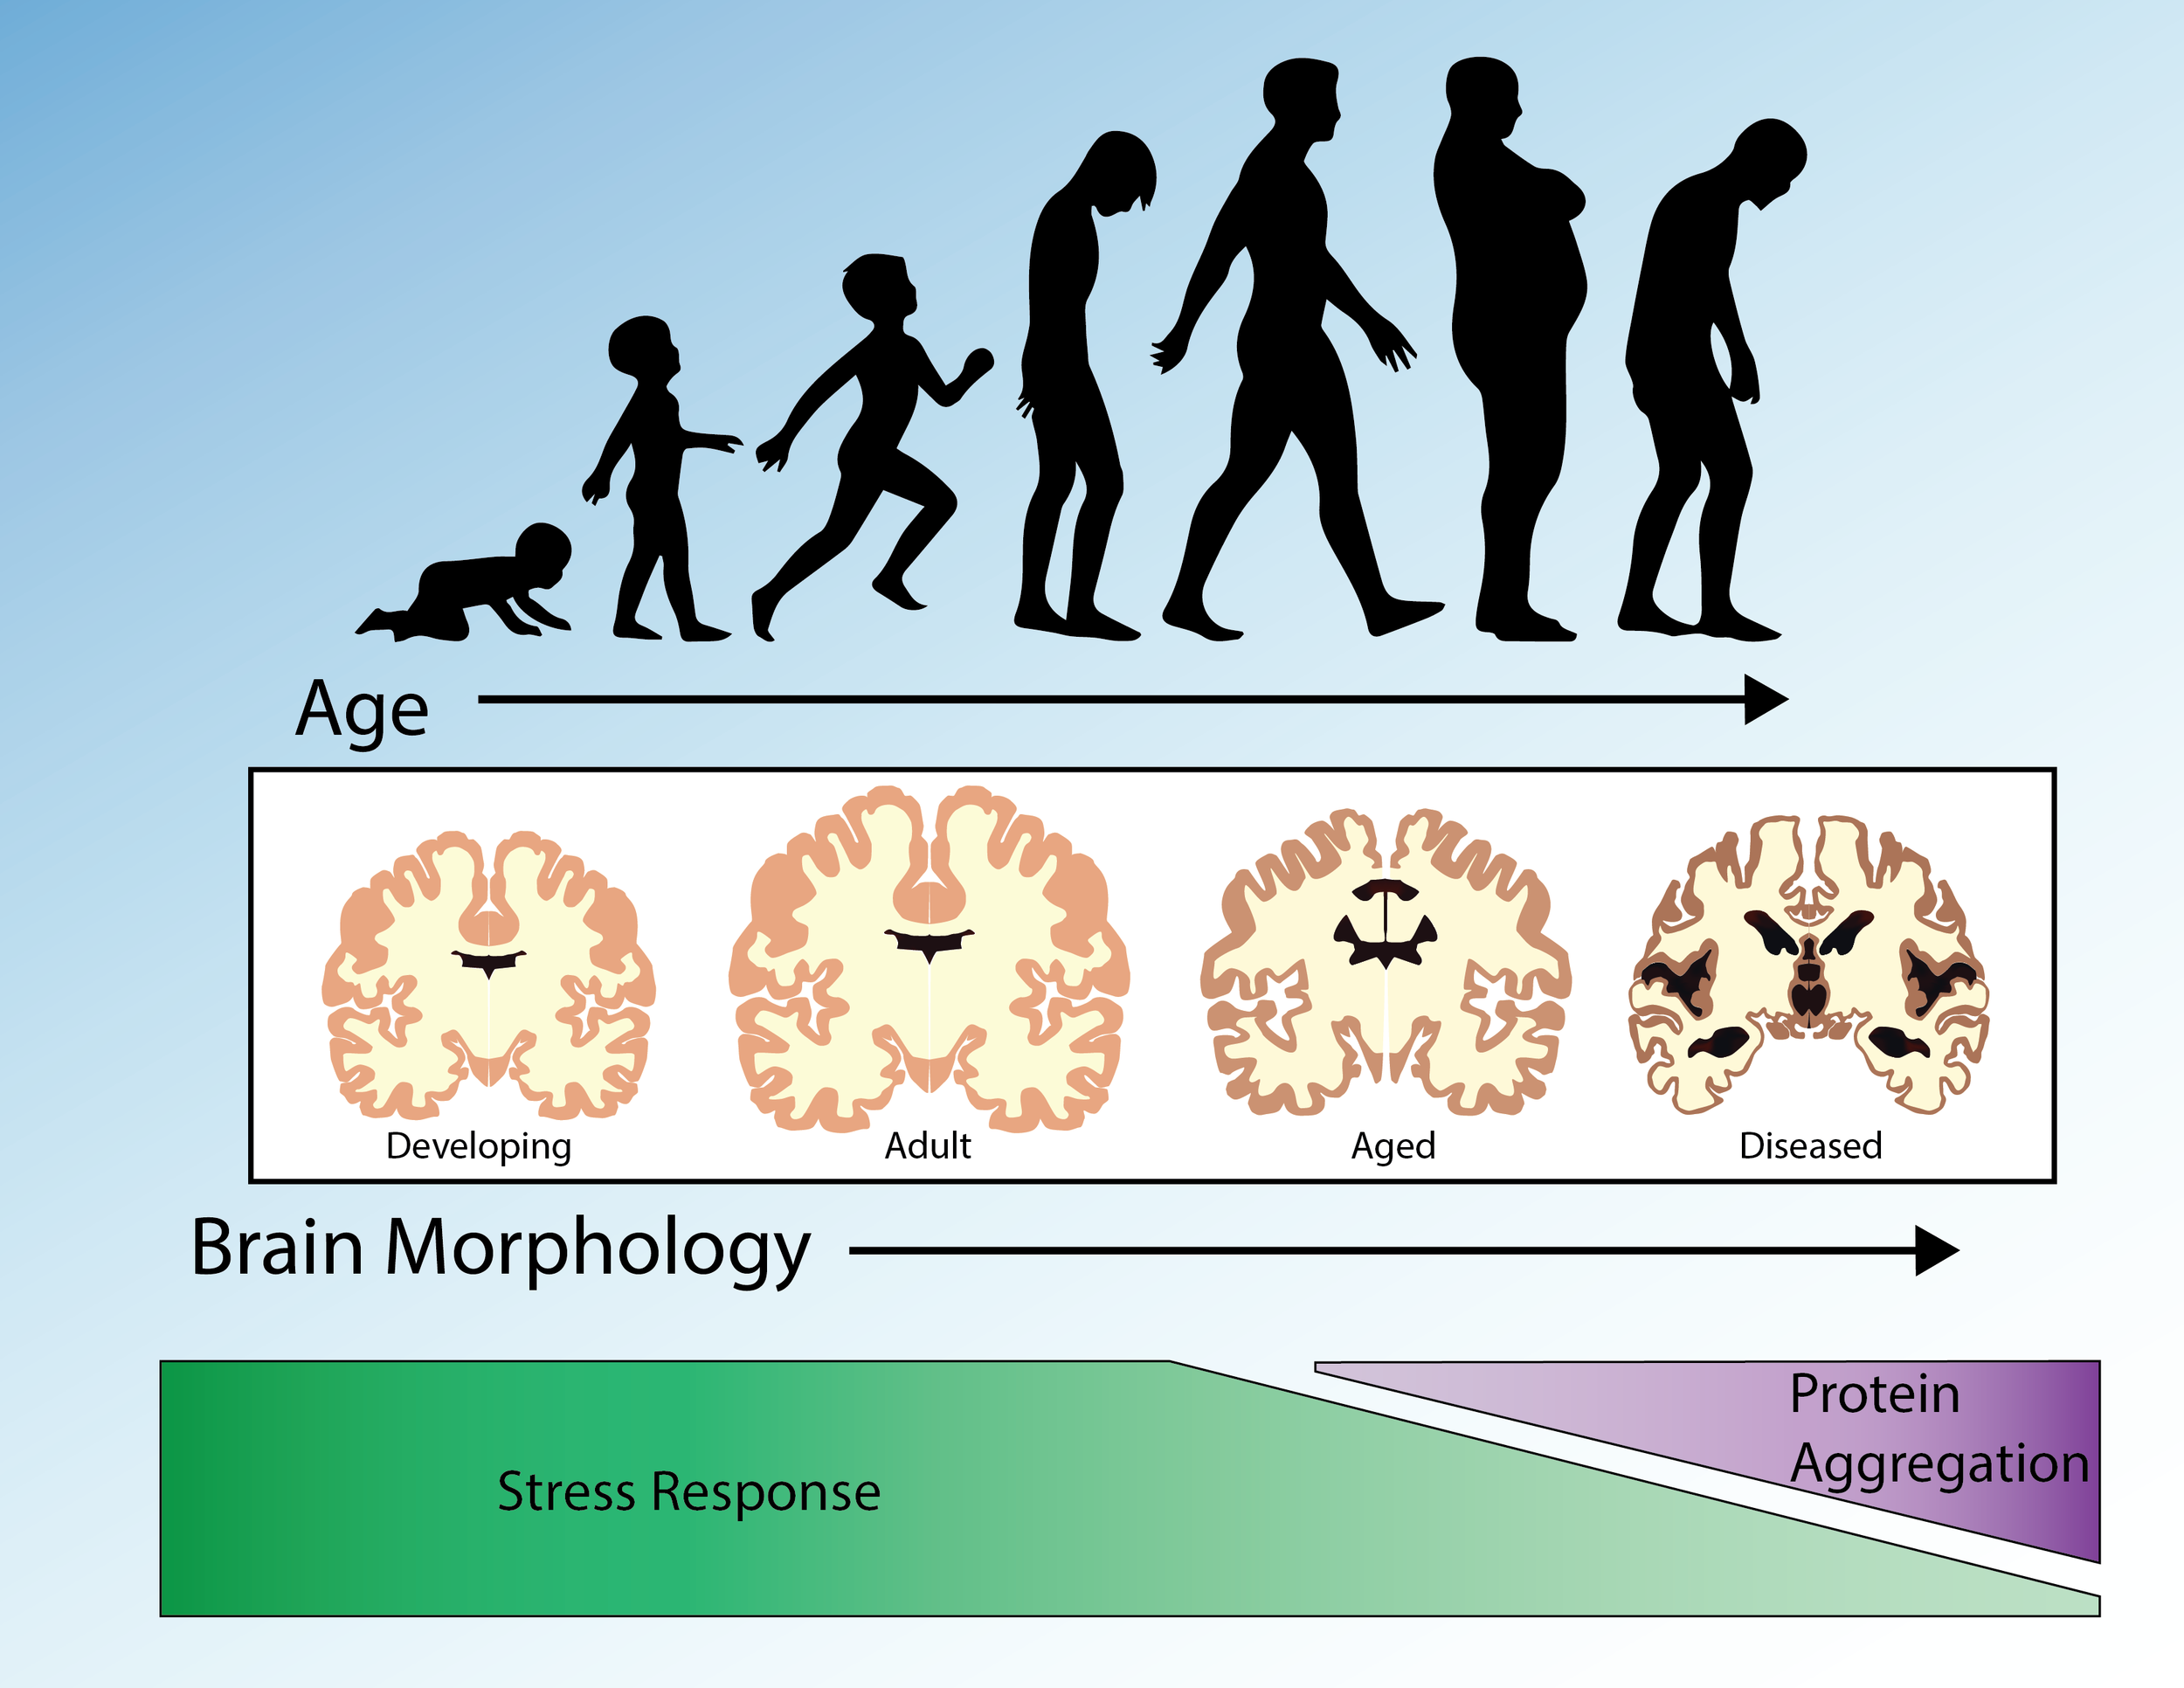 Decline of Protein Homeostasis with Age